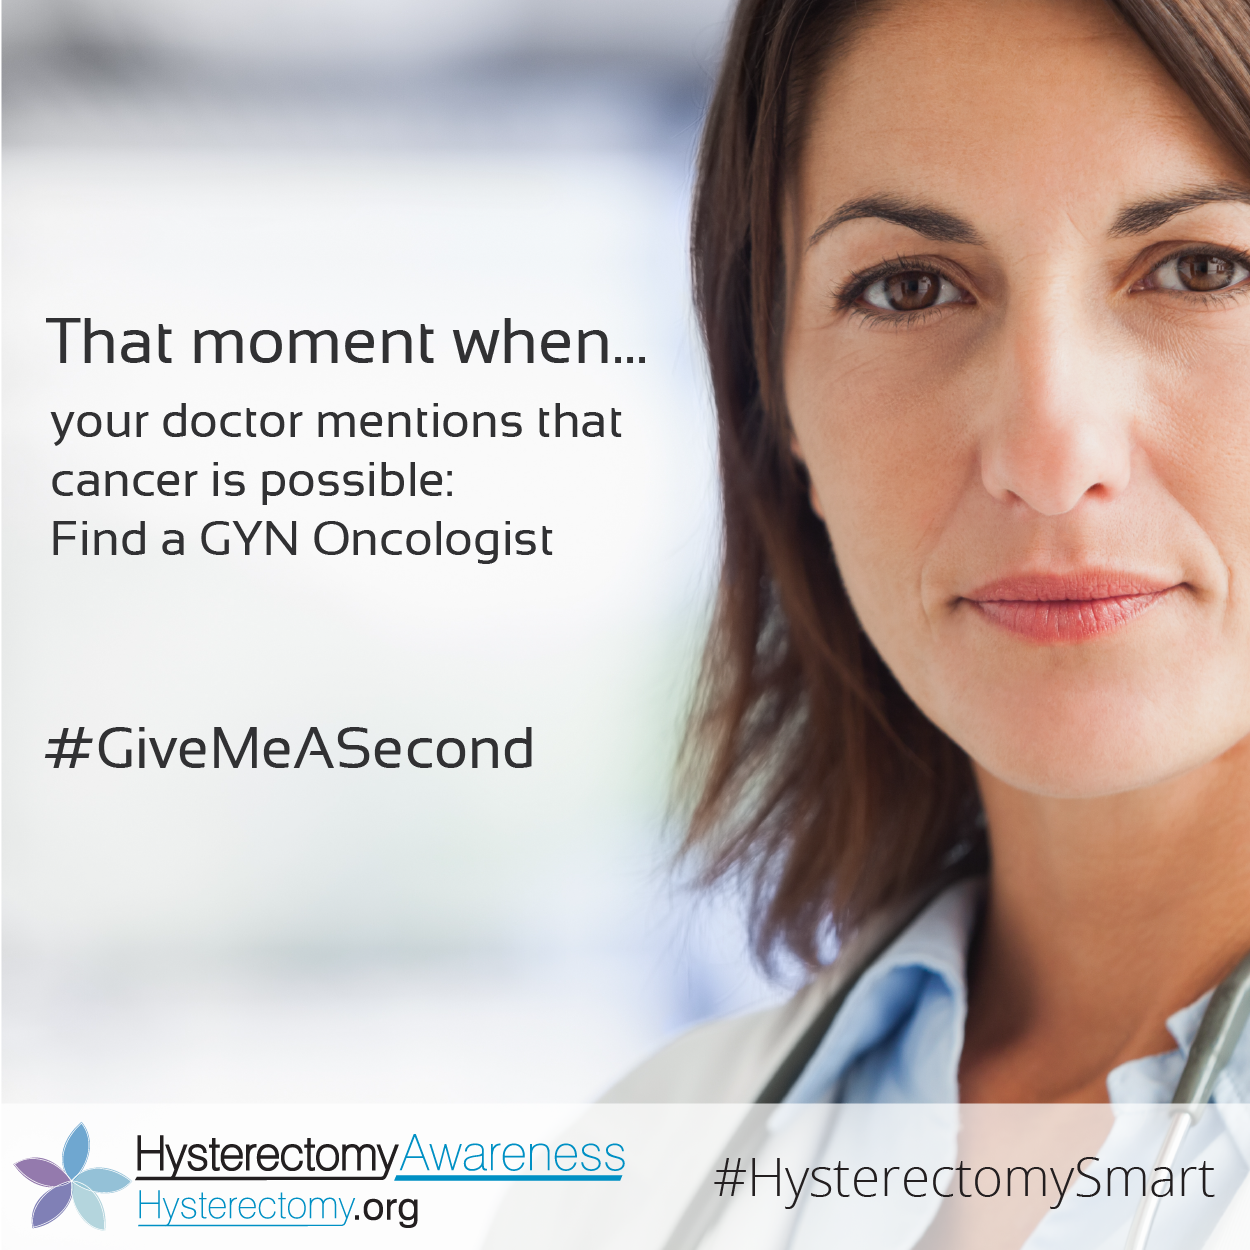 The moment your doctor mentions that cancer is possible: Find a GYN Oncologist #GiveMeaSecond #HysterectomySmart